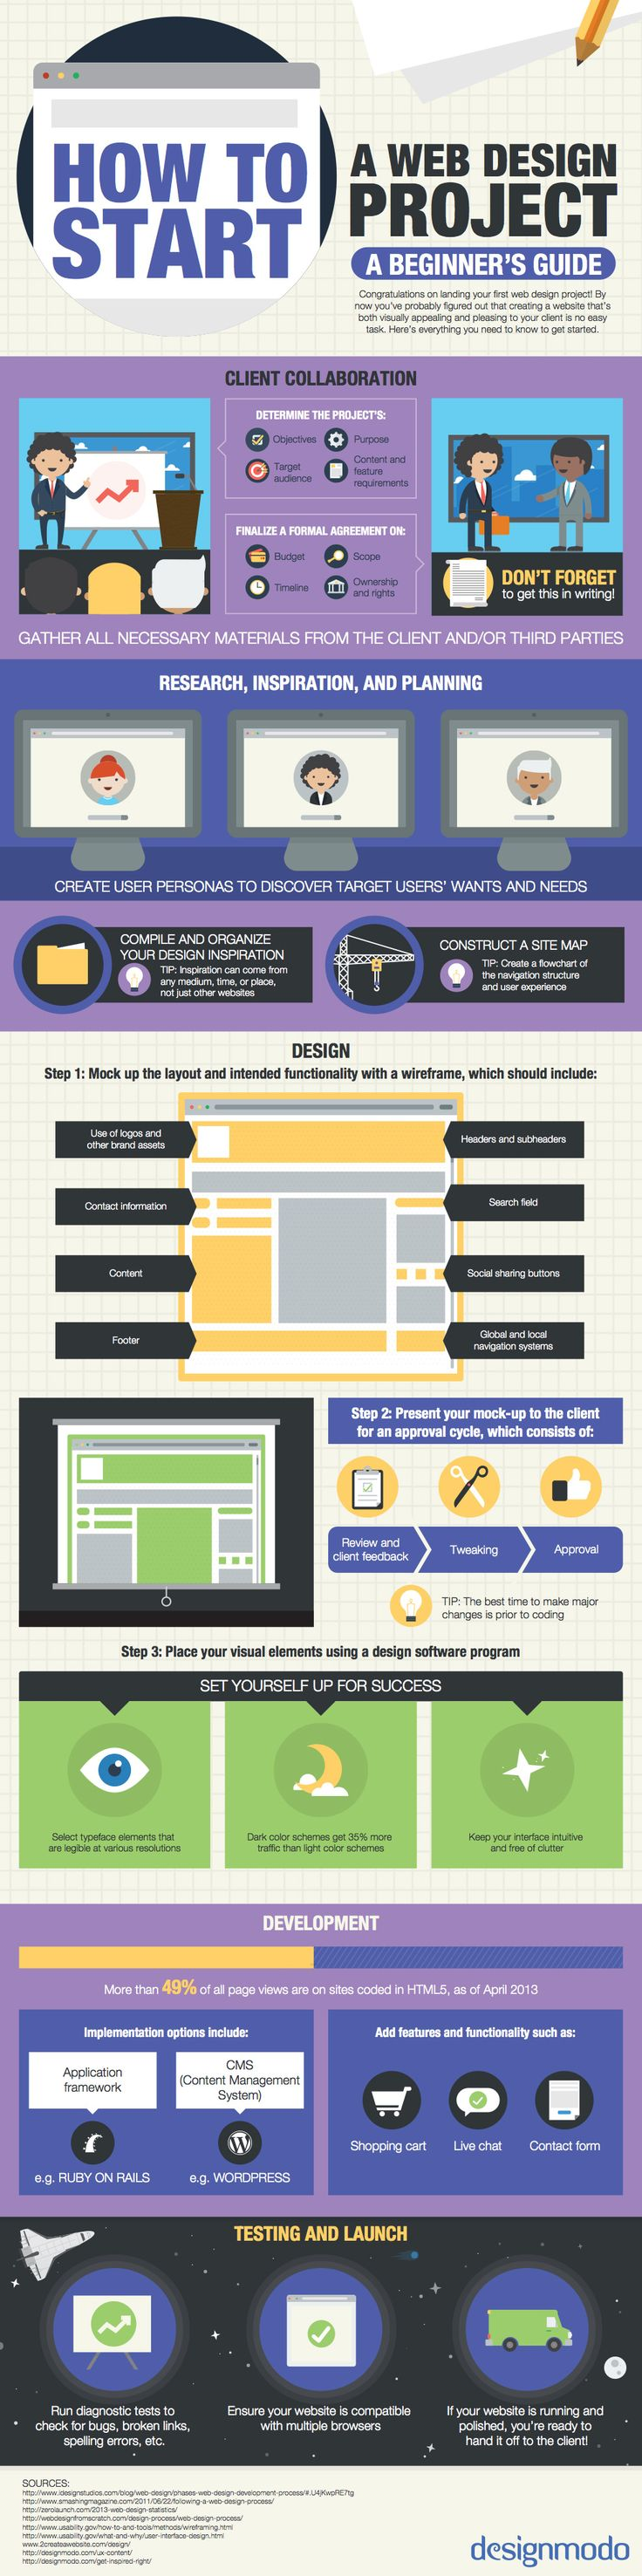 how to start a web design project infographic - Web Design Project Ideas